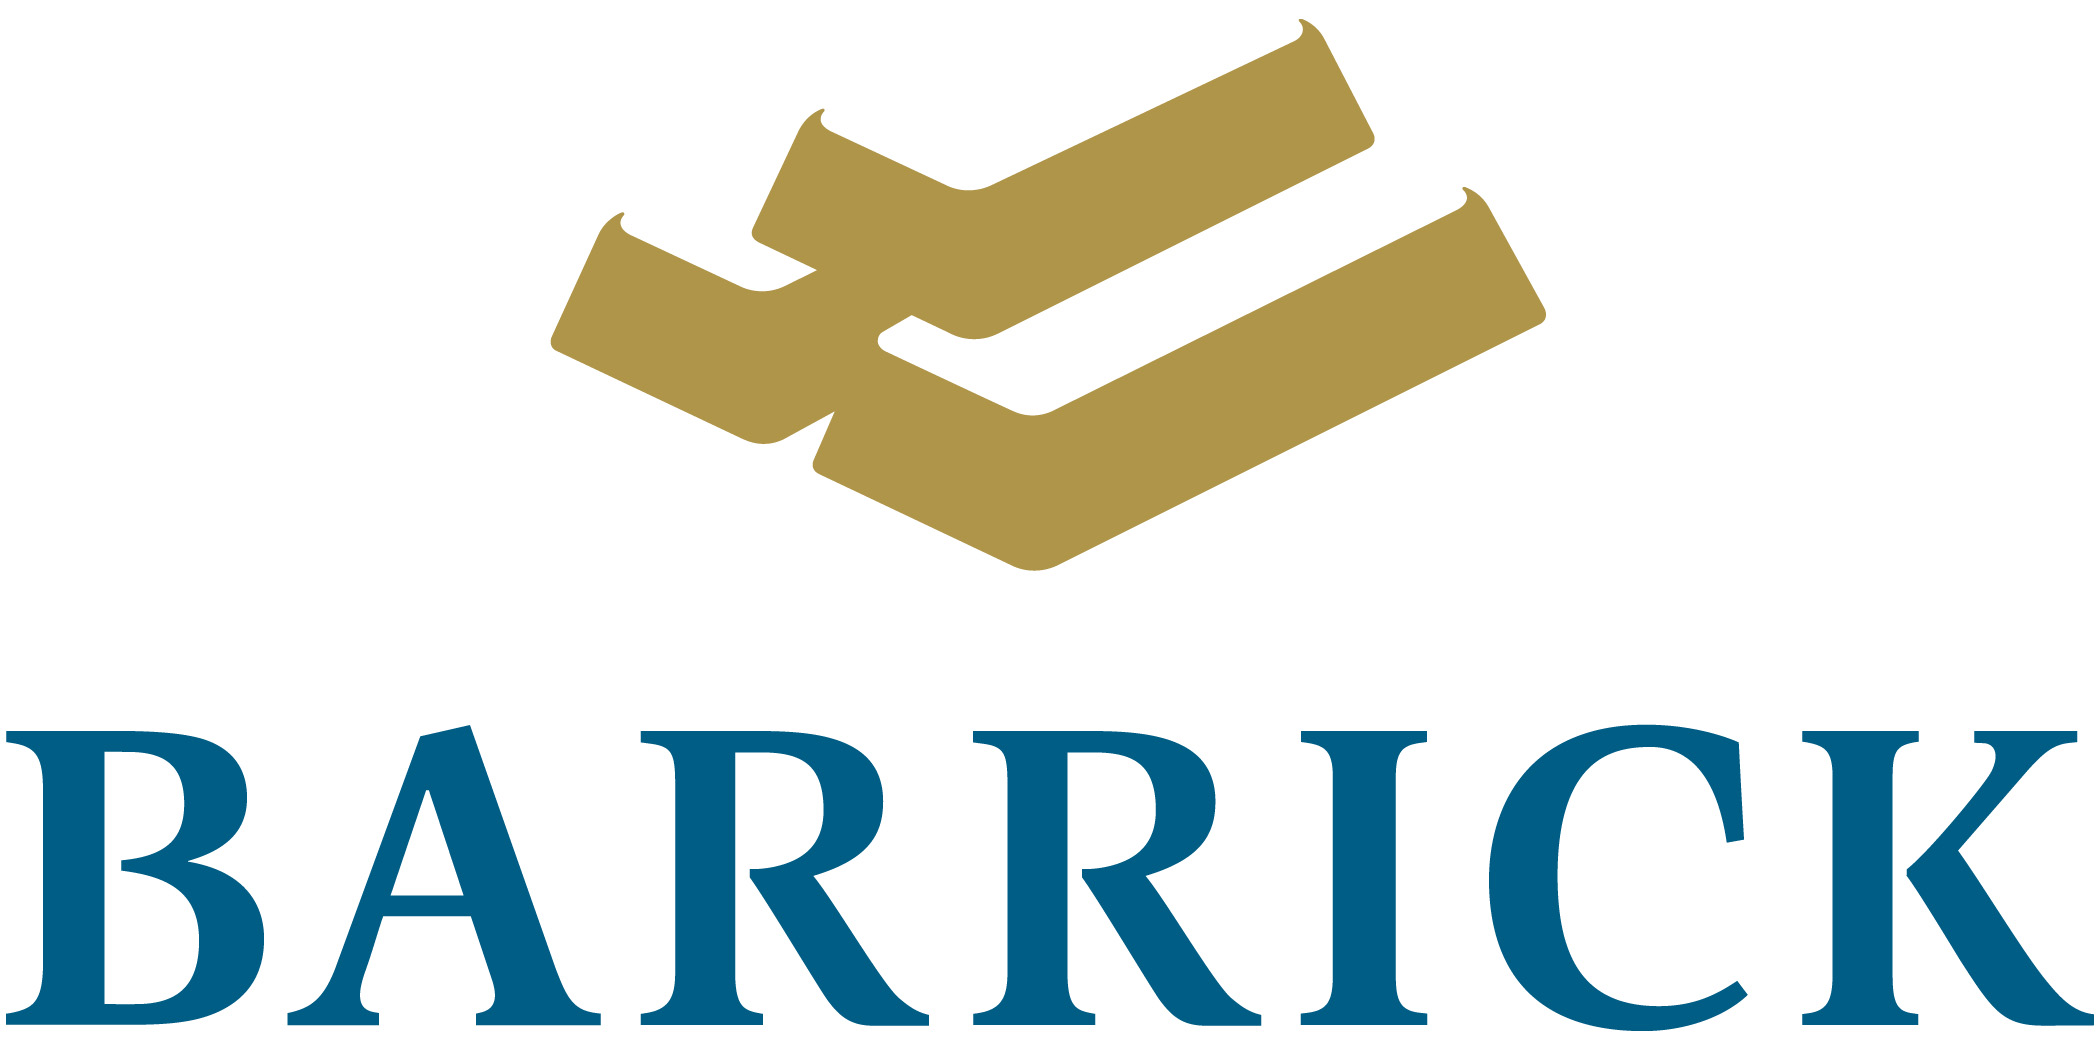 BARRICK LOGO colour.jpg